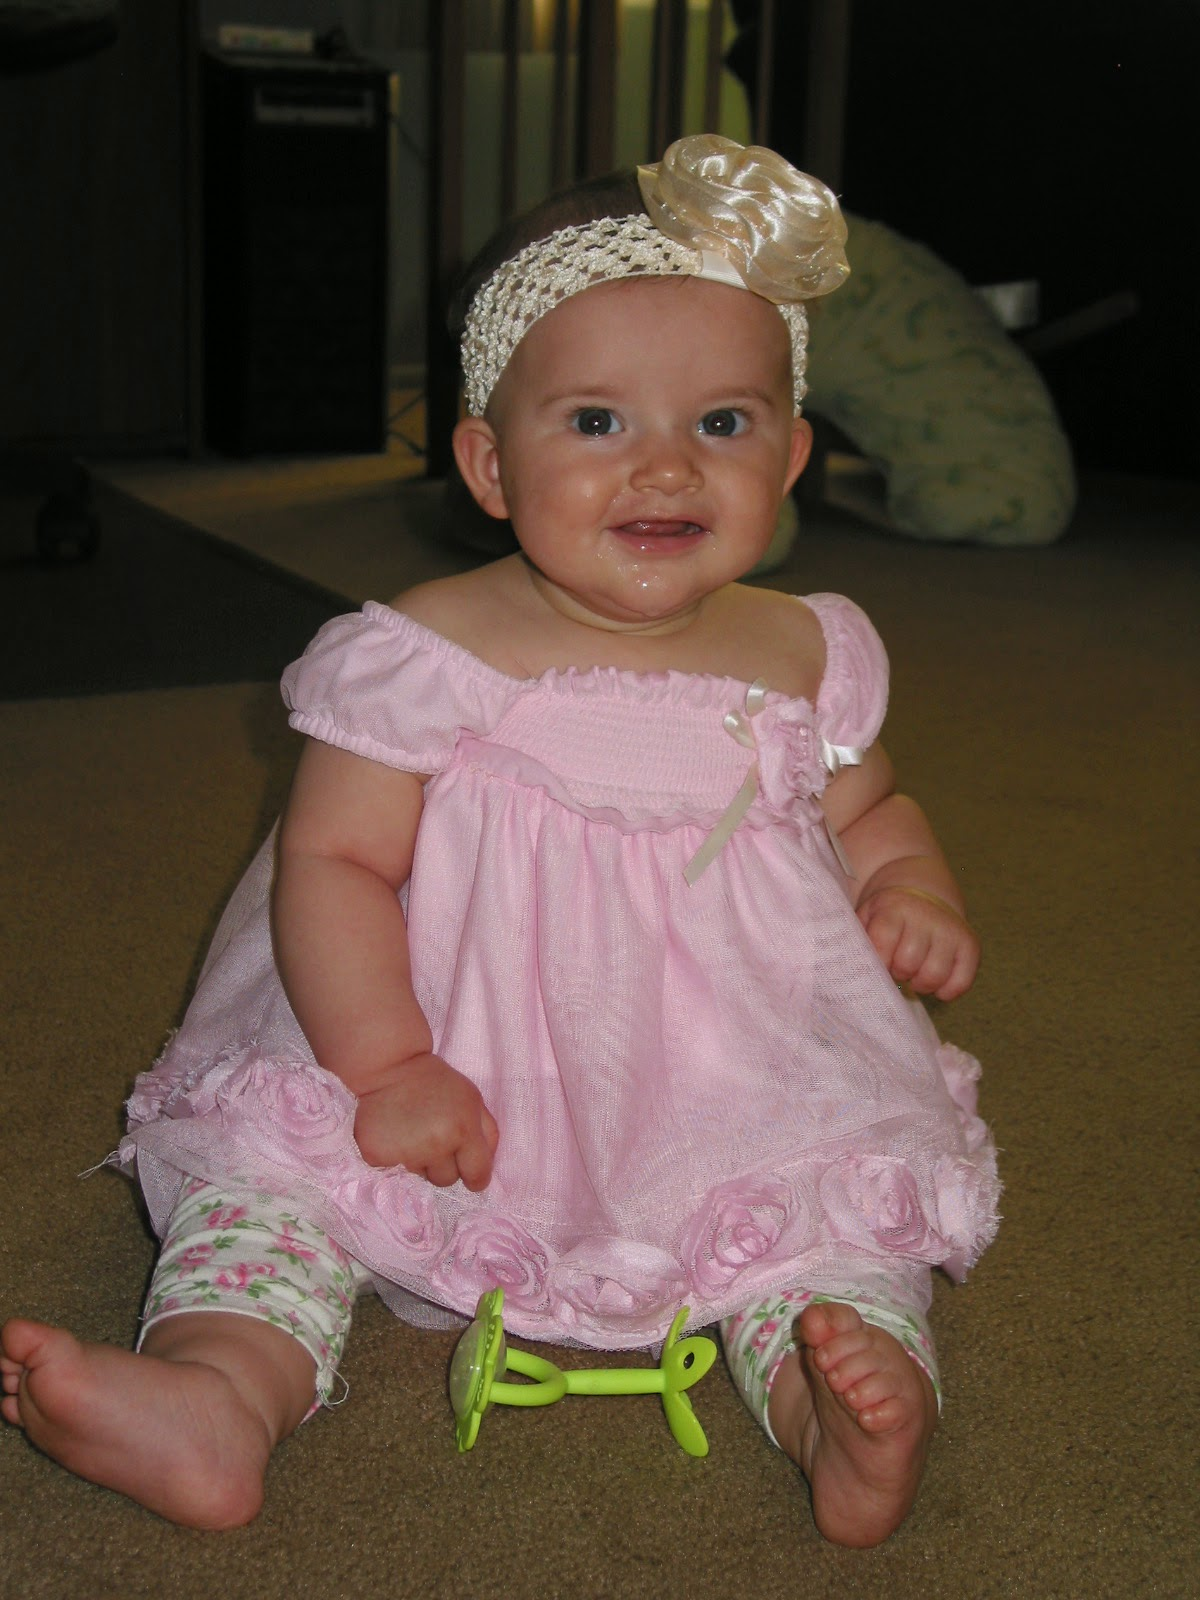 Baby Girl 8 Months